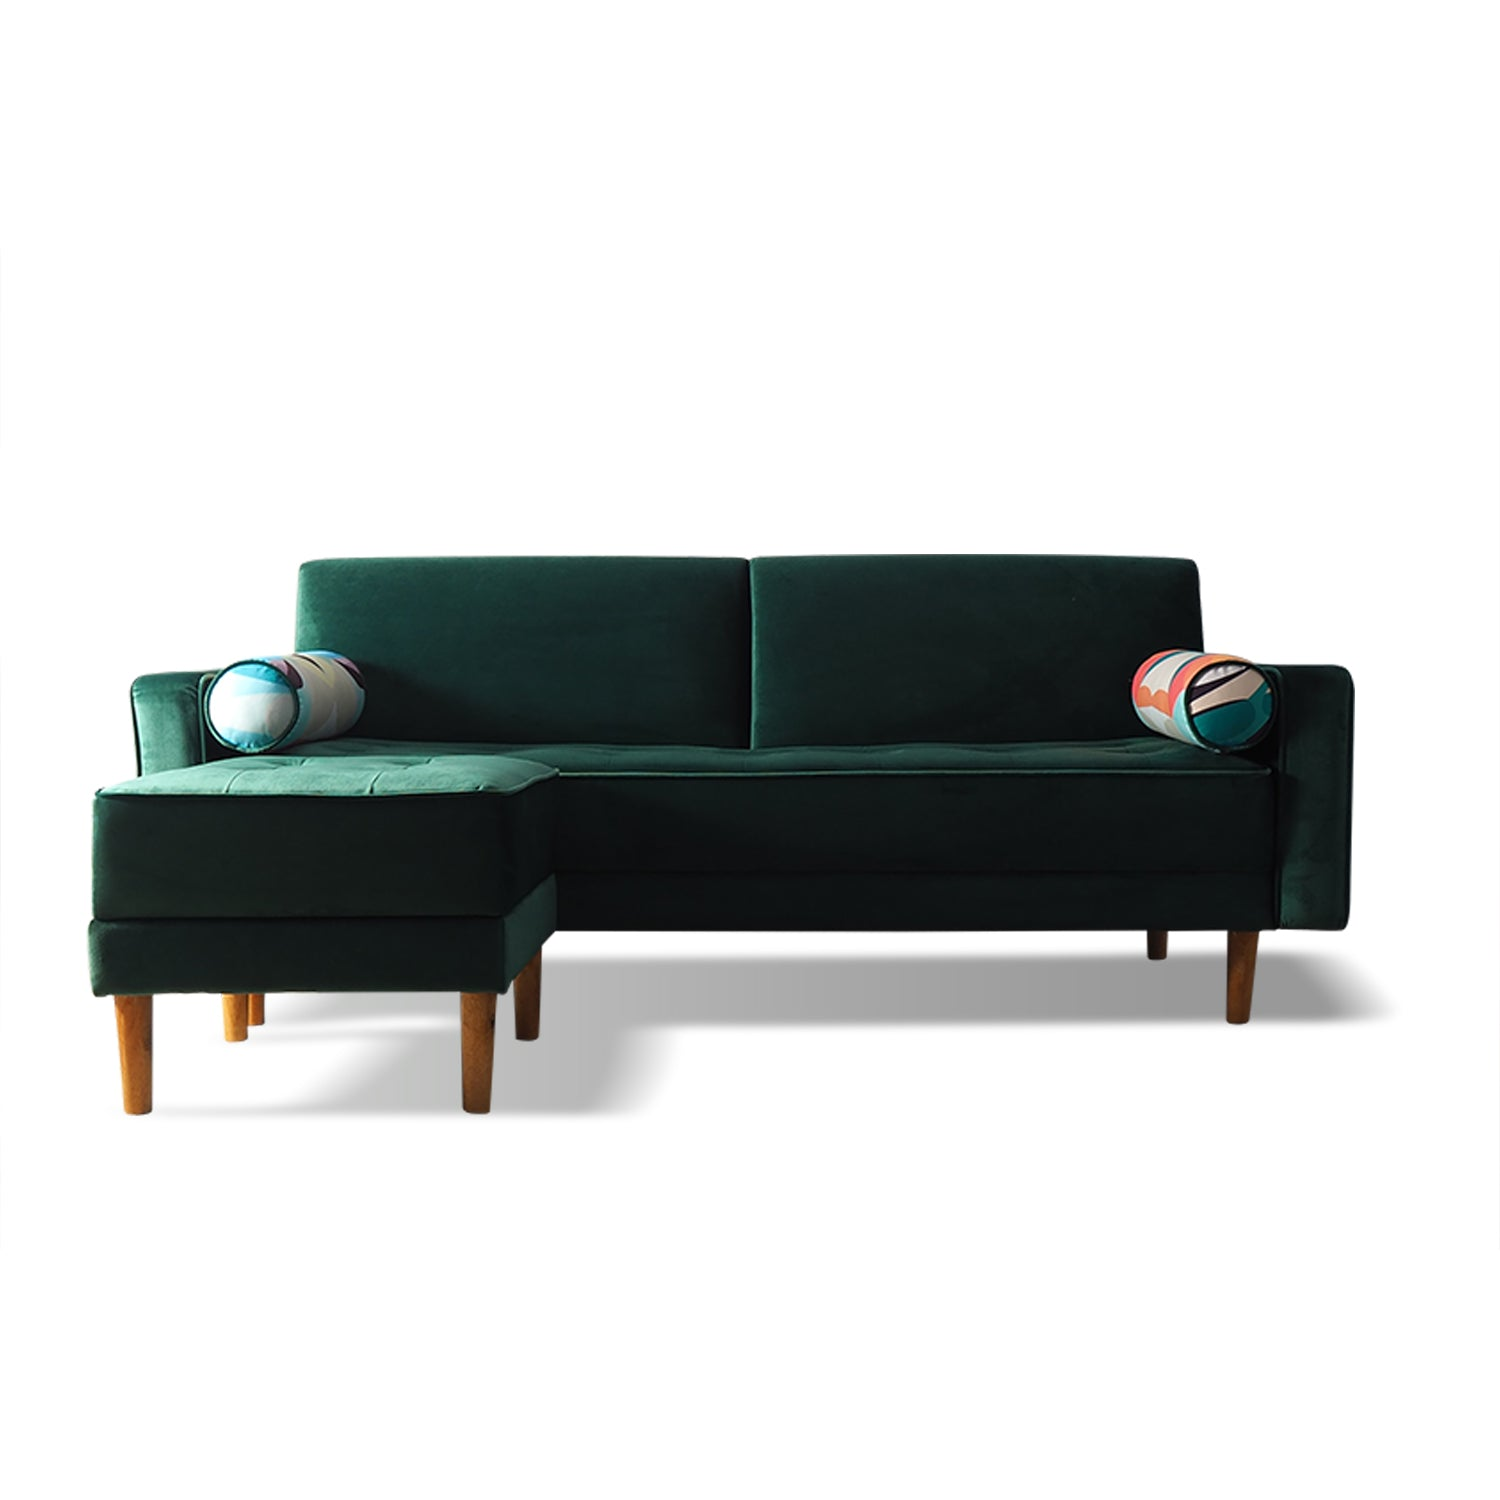 Sofa L Green Amandeus